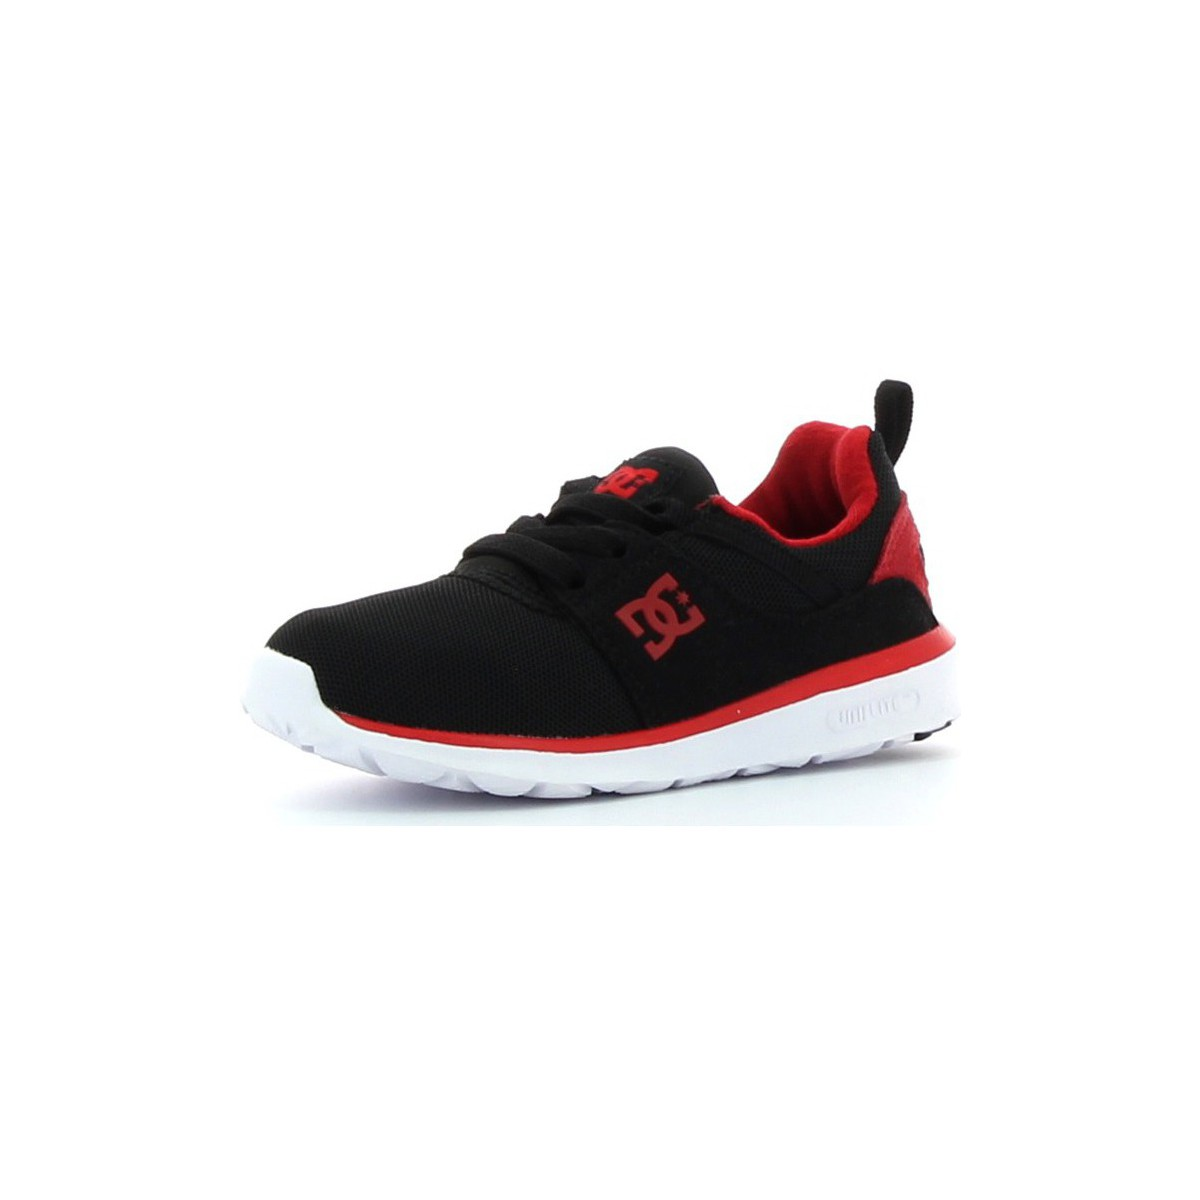 DC Shoes kinderschuhe Heathrow - broschei